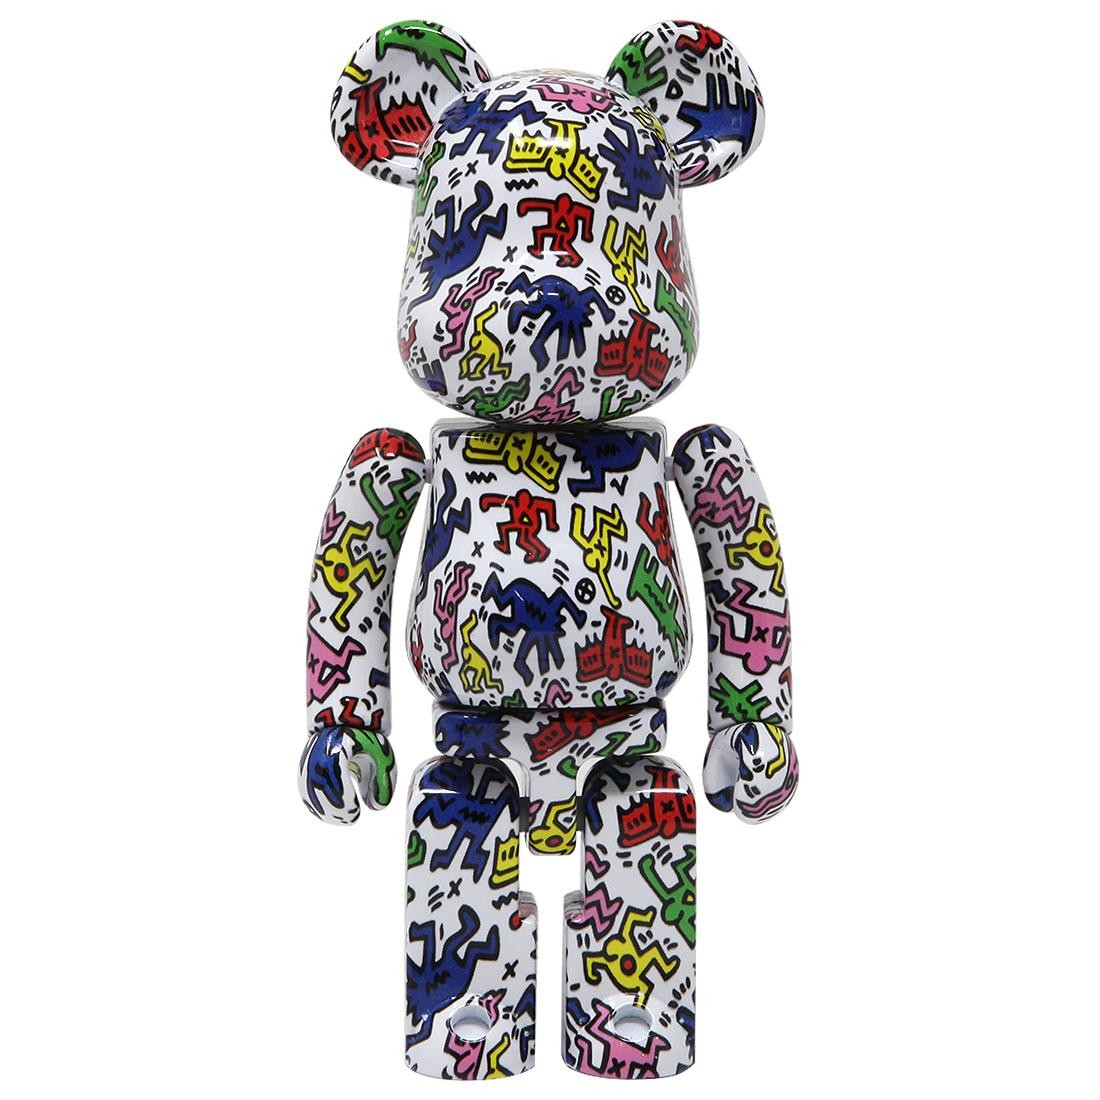 Medicom Super Alloyed Keith Haring 200% Bearbrick Figure (multi)